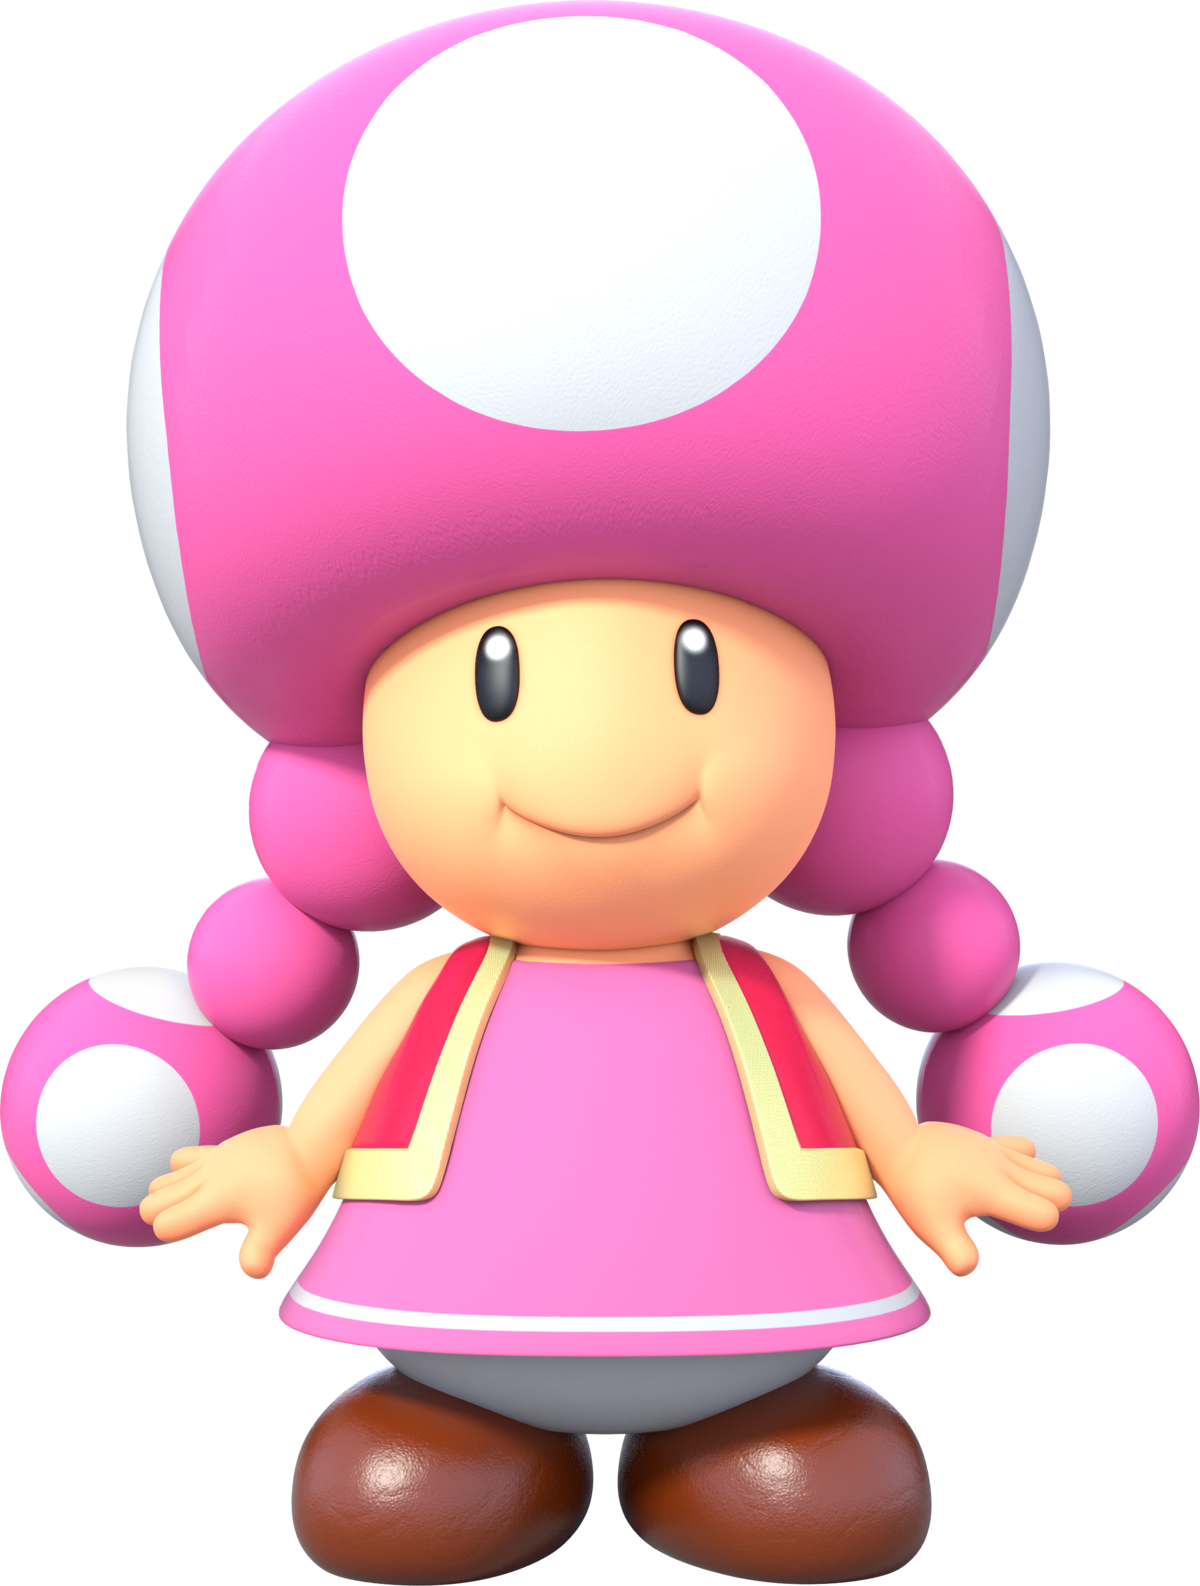 mario bros, toadette super mario wiki the mario encyclopedia #28340